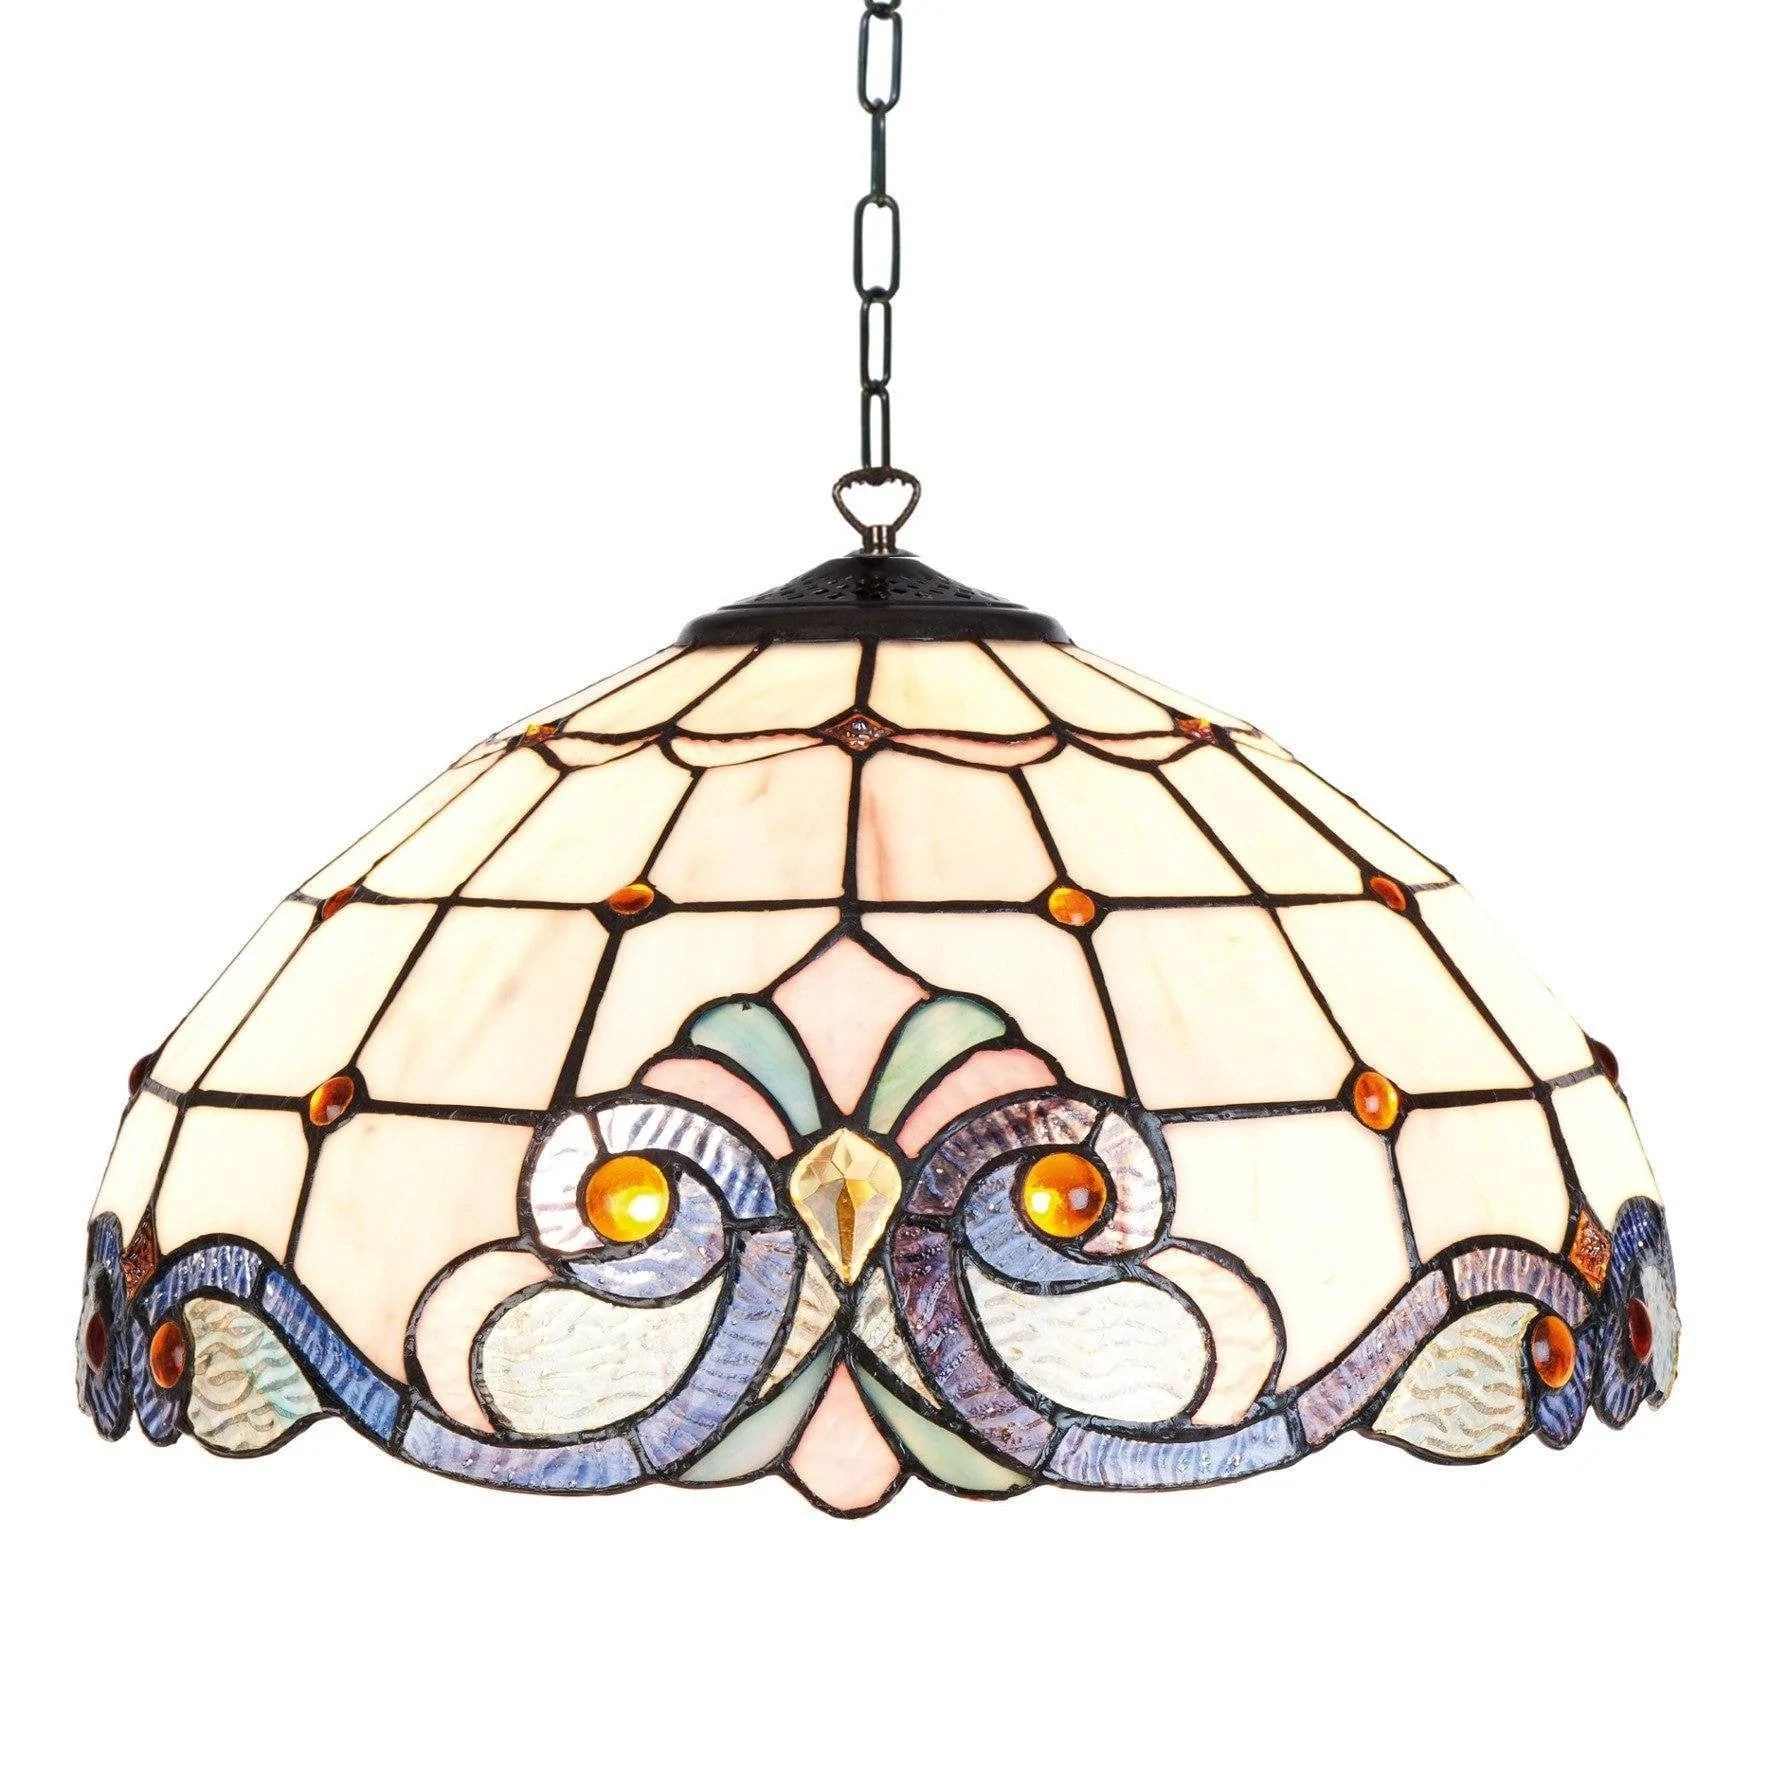 Glass Lamp Ceiling Newcastle Tiffany Ceiling Light Single Bulb Fitting